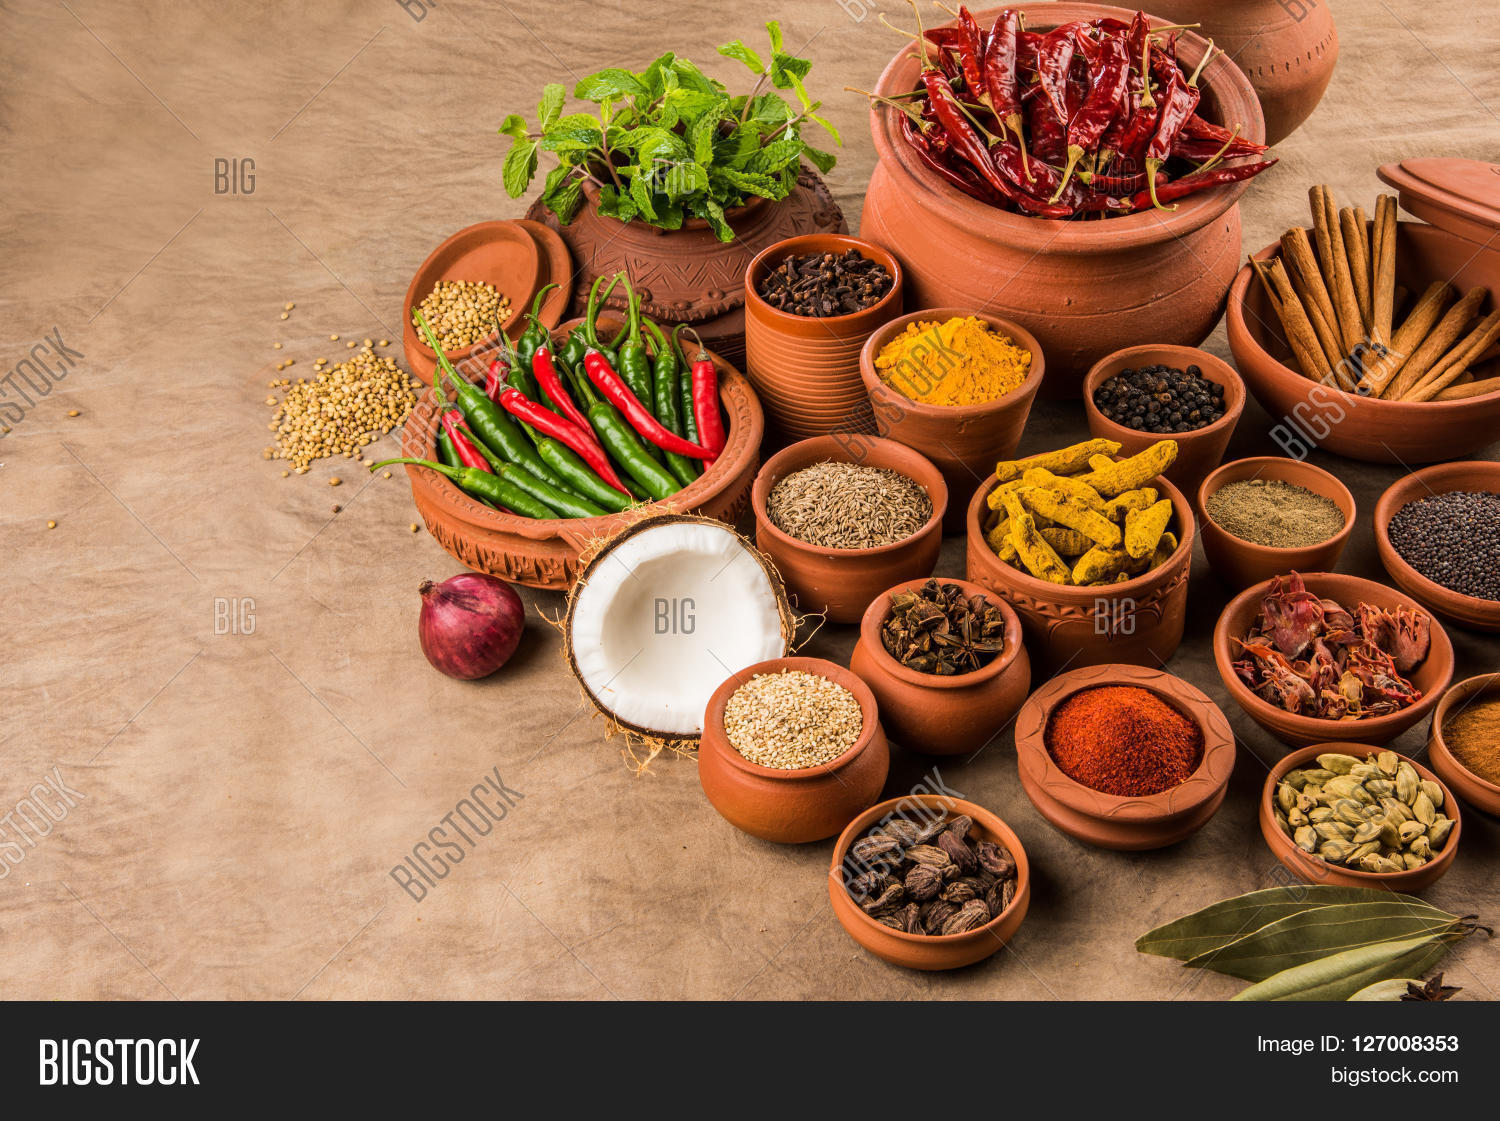 indian spices image photo free trial bigstock. Black Bedroom Furniture Sets. Home Design Ideas